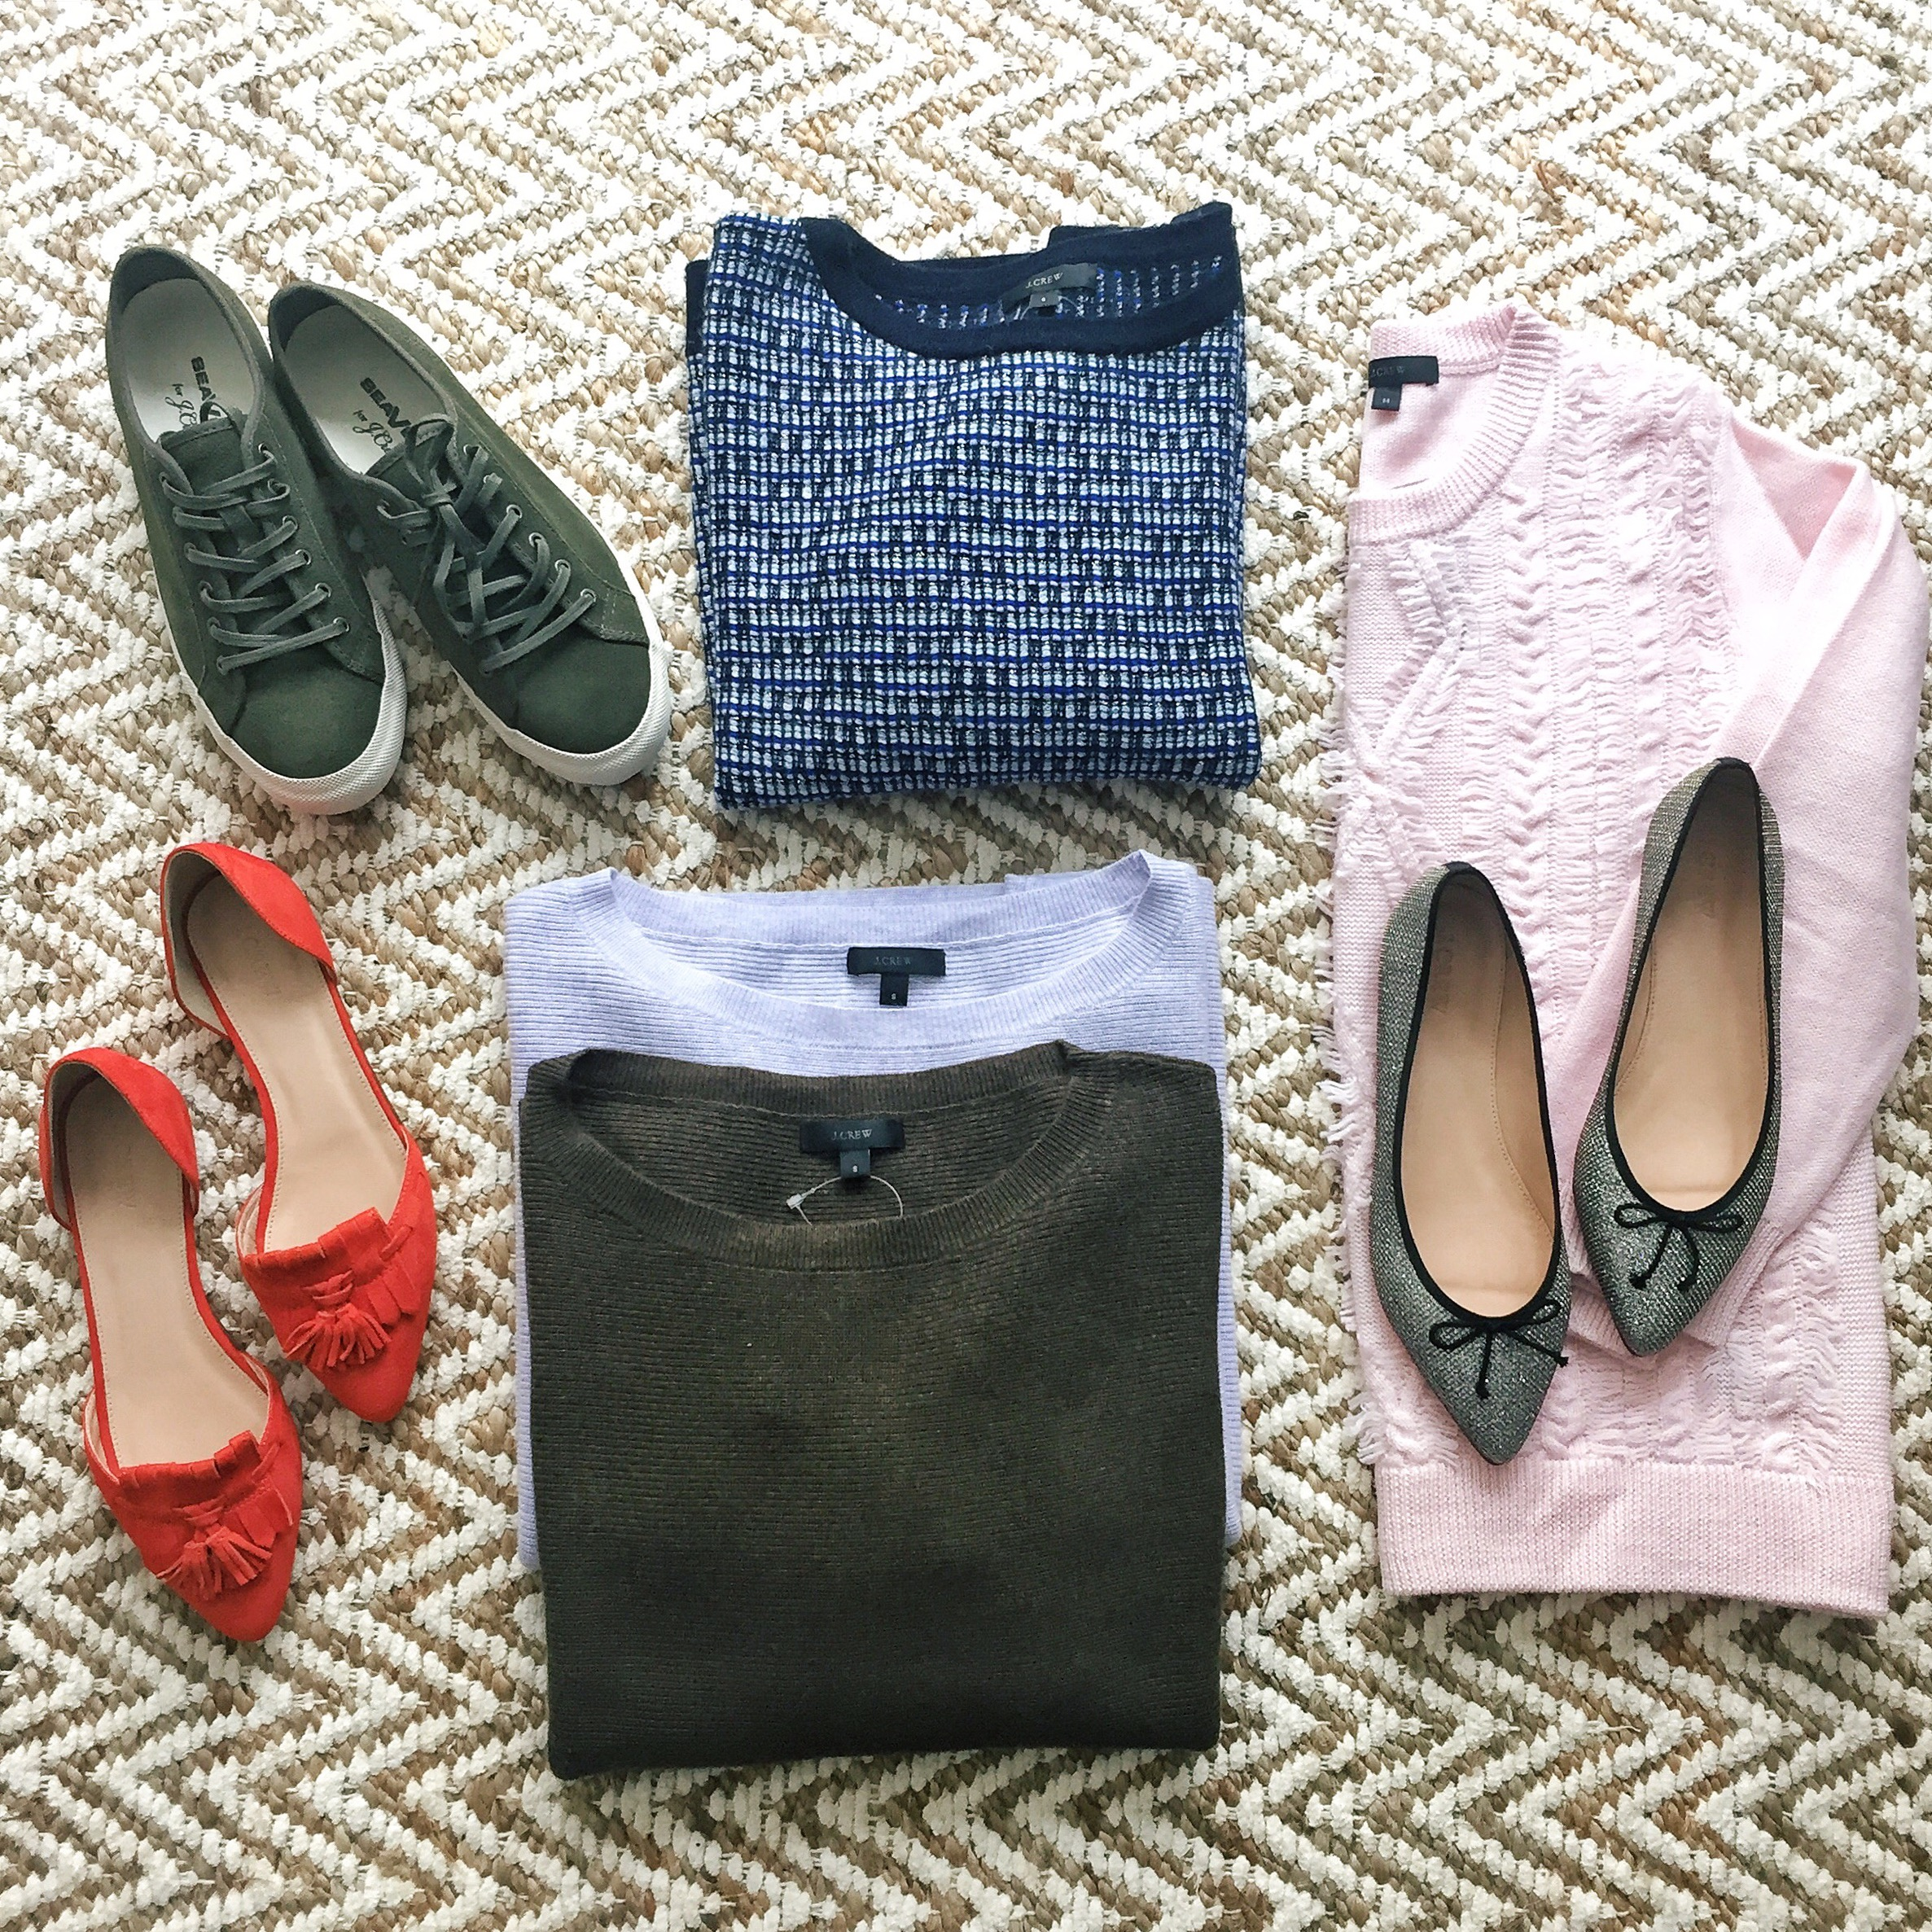 jcrew fall 2015 suede tassel loafers mermaid glitter pointed toe flats green suede sneakers textured sweaters